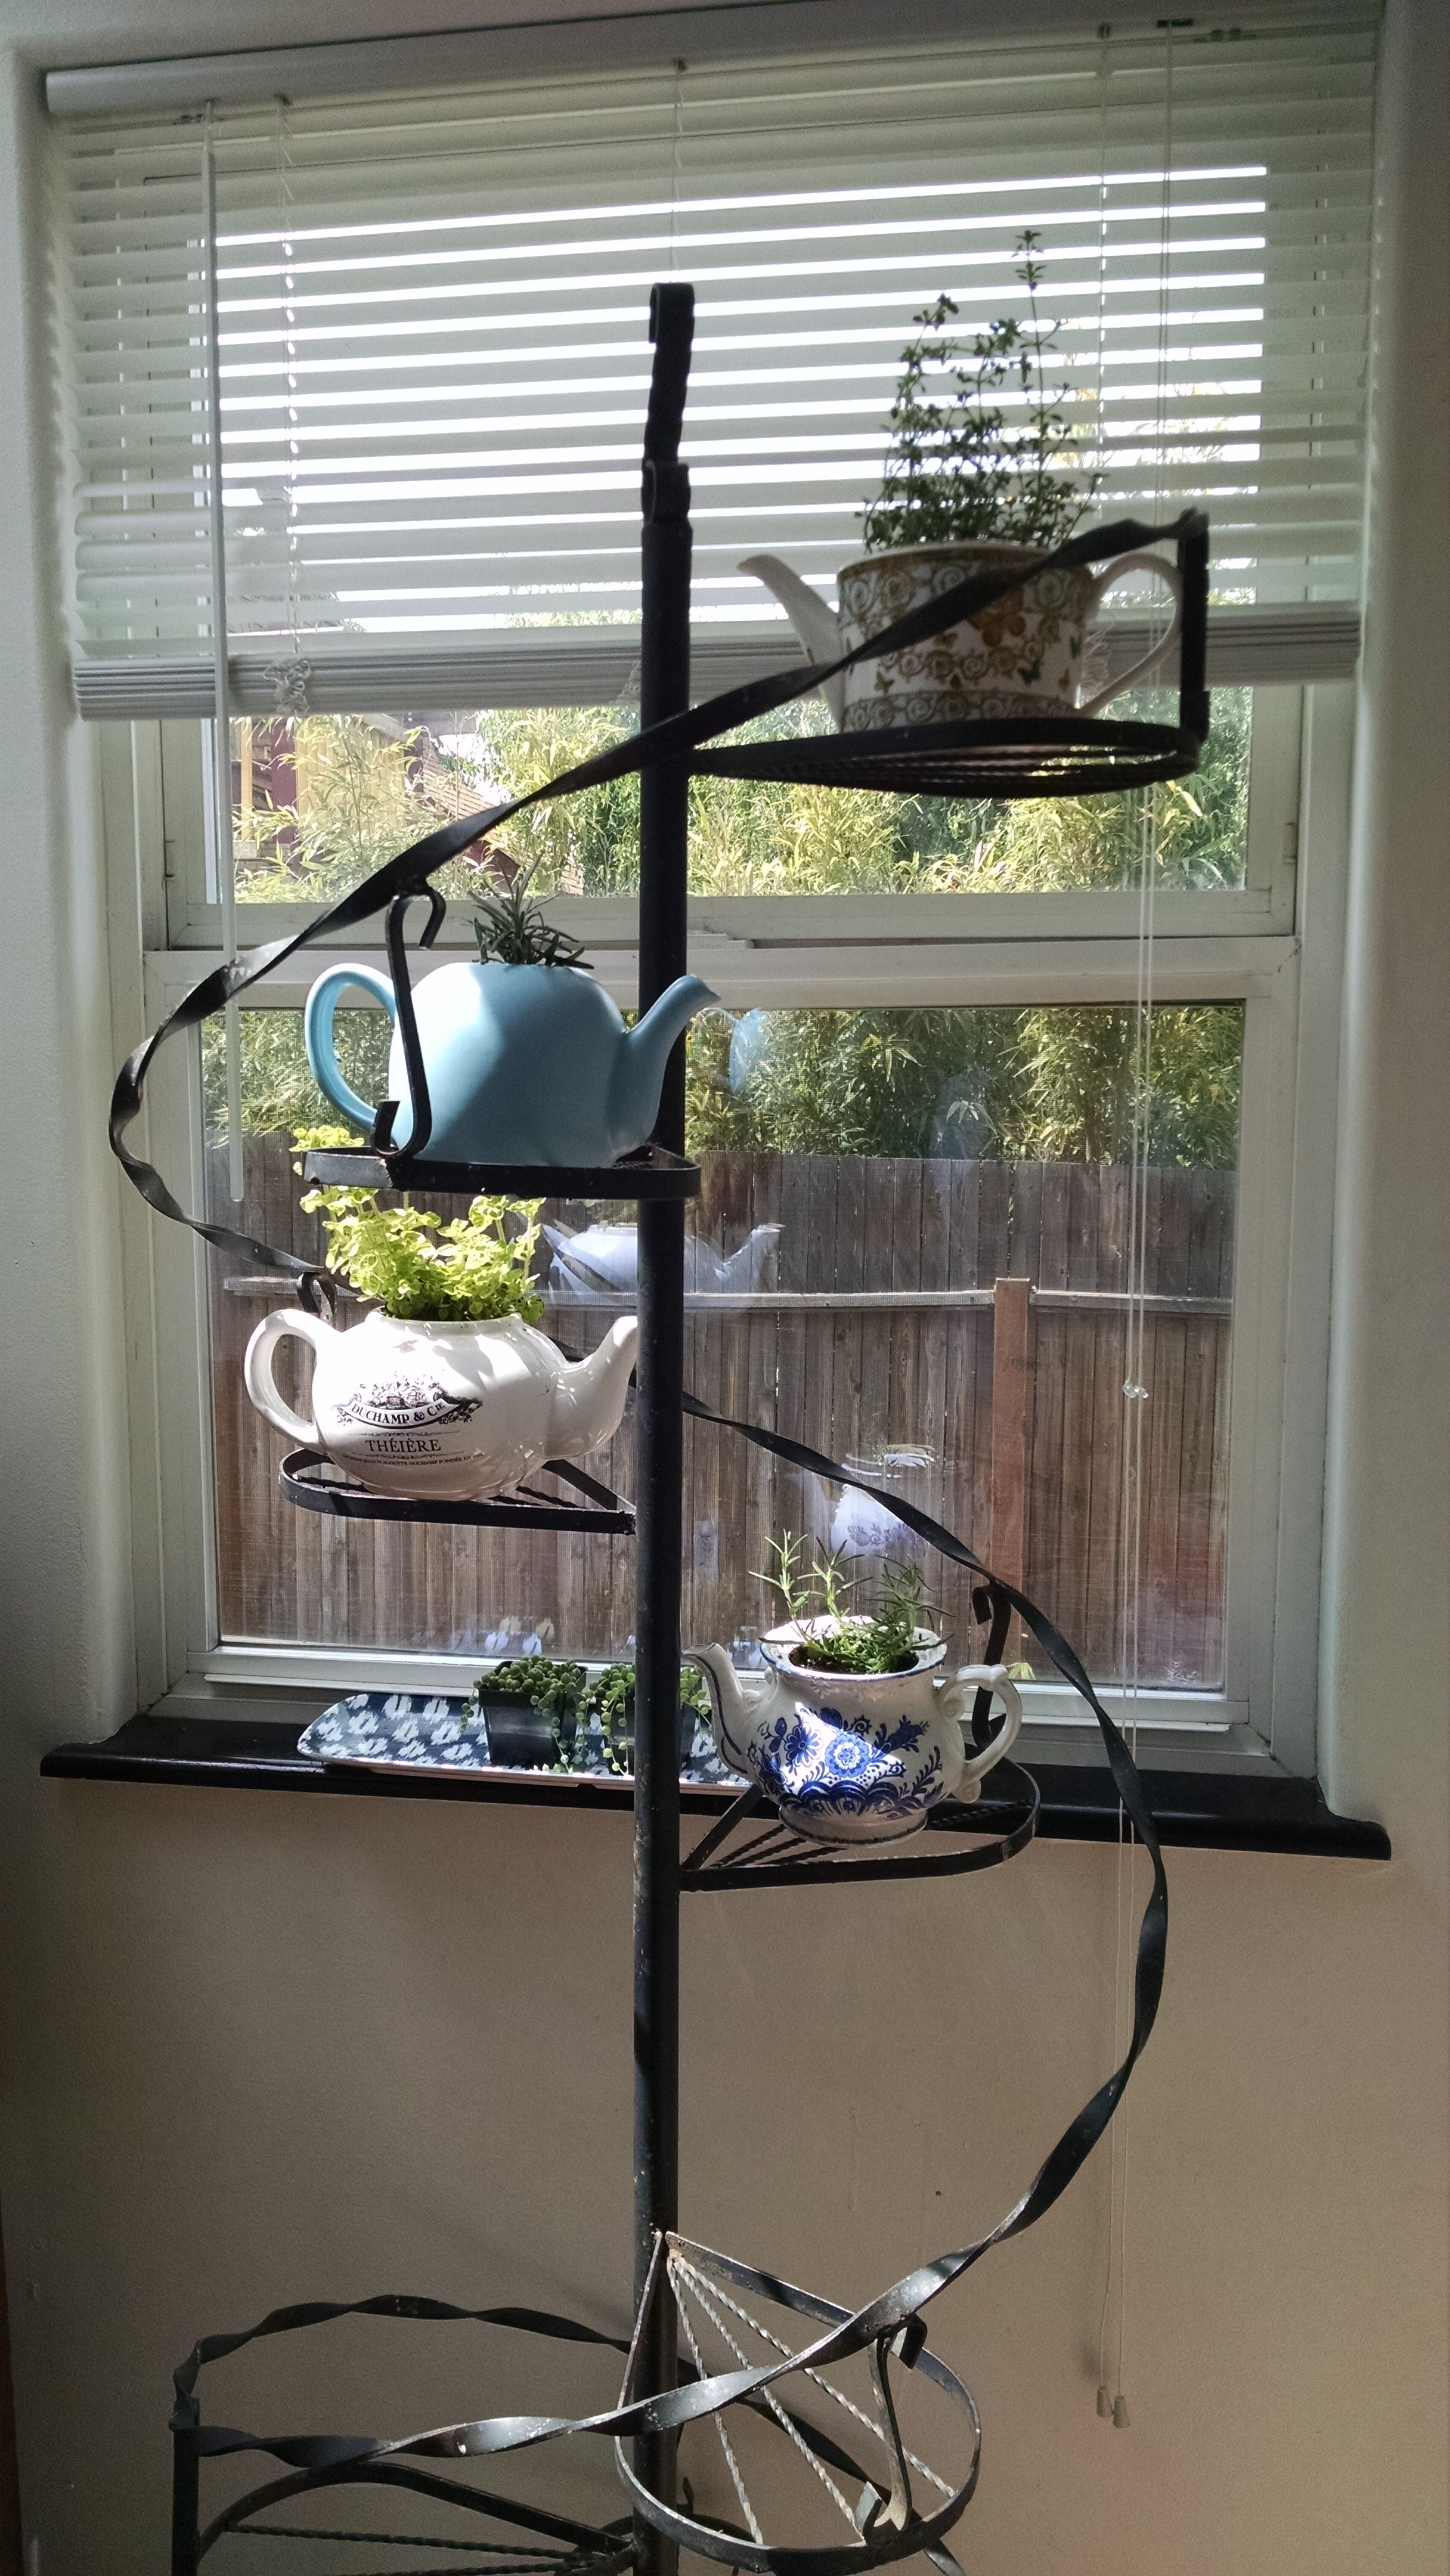 Vintage teapots and plant stand for kitchen herbs. Put window screen ...